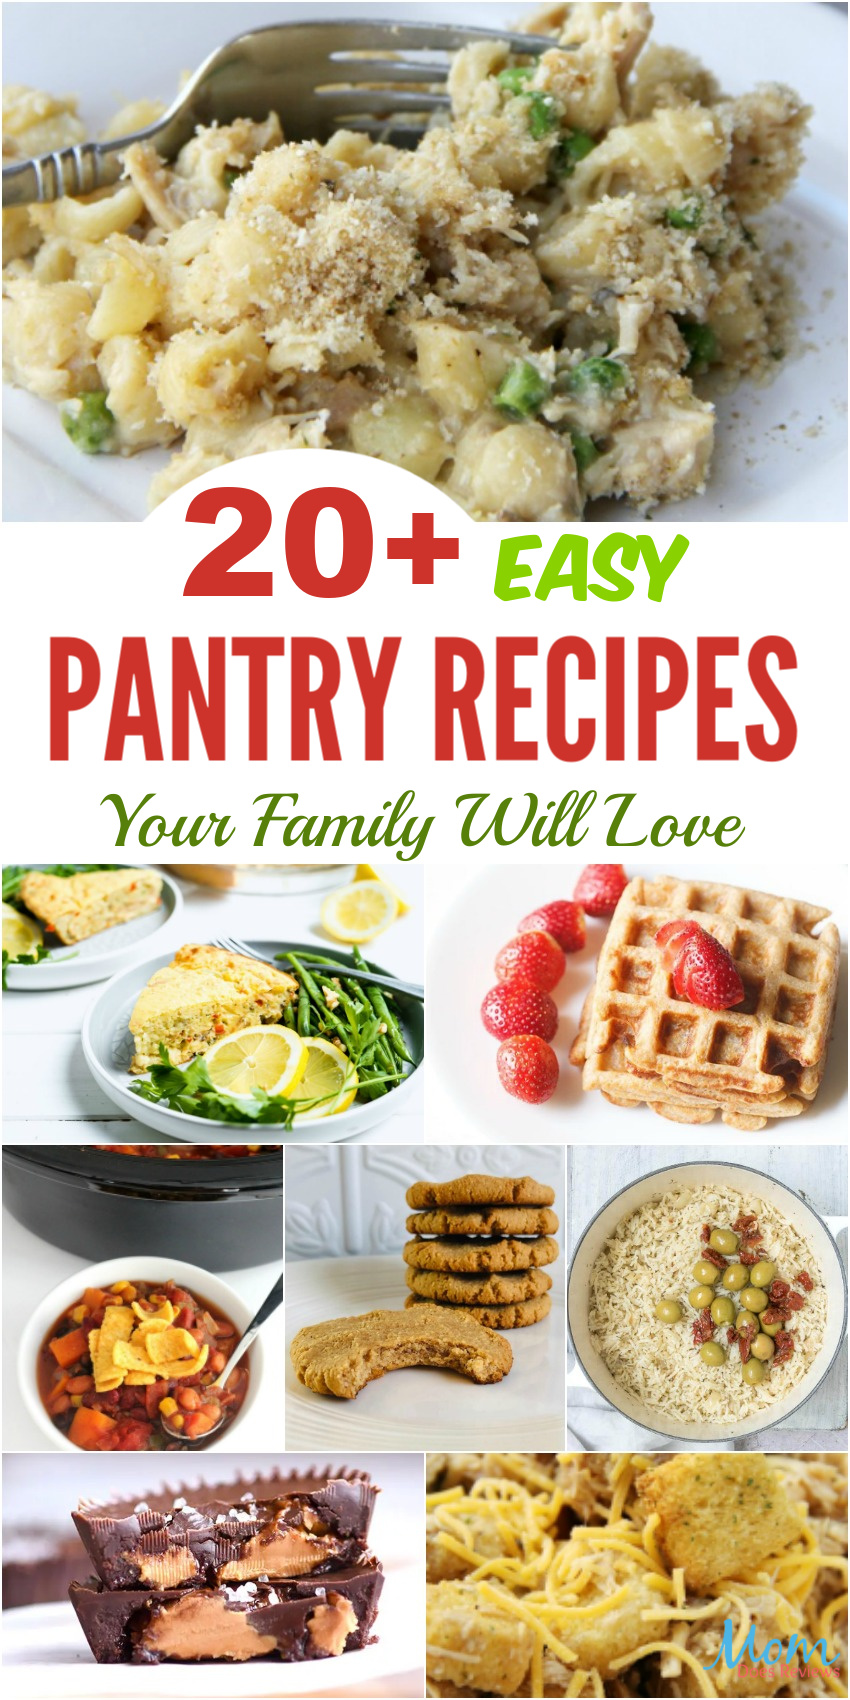 20+ Easy Pantry Recipes Your Family Will Love #recipes #stayhome #pantryfood